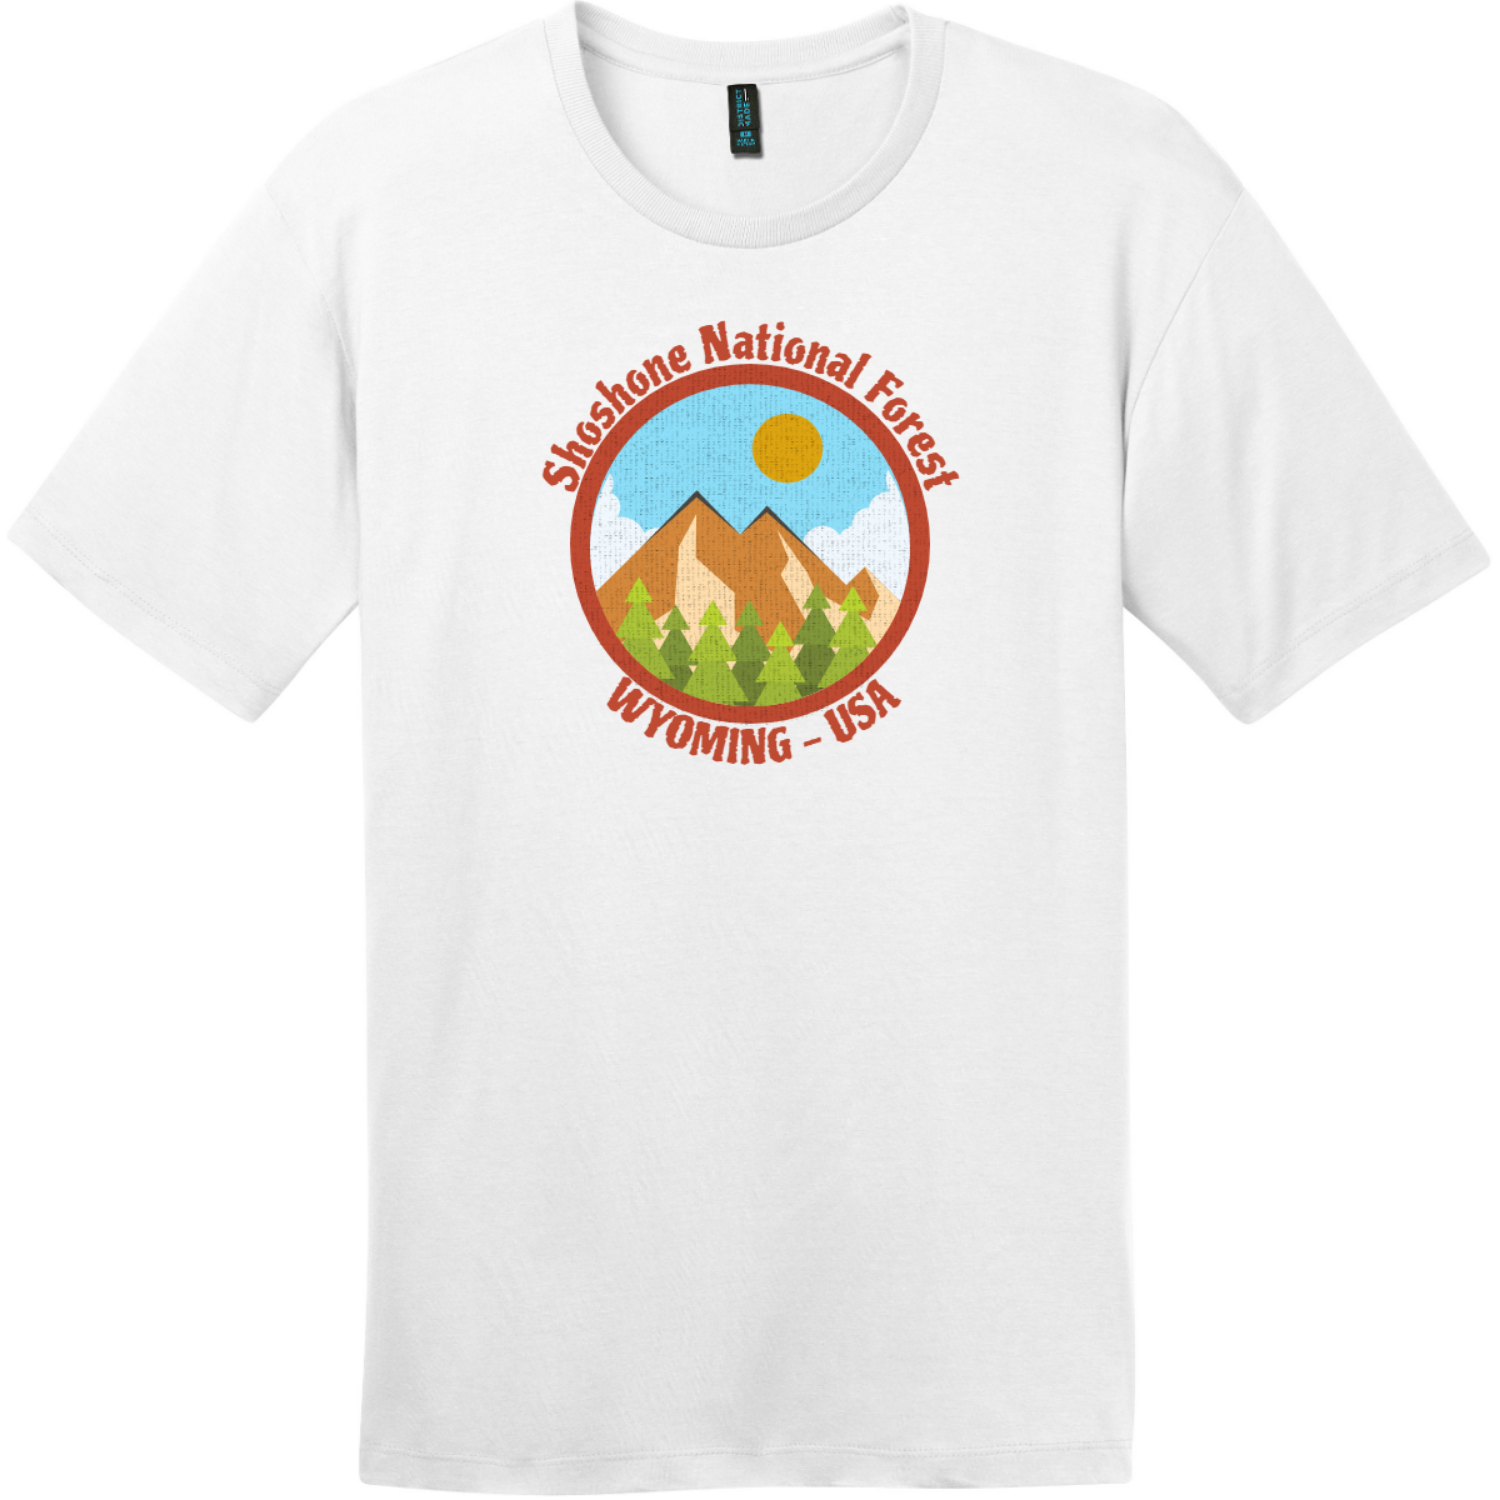 Shoshone National Forest Wyoming T-Shirt Bright White District Perfect Weight Tee DT104